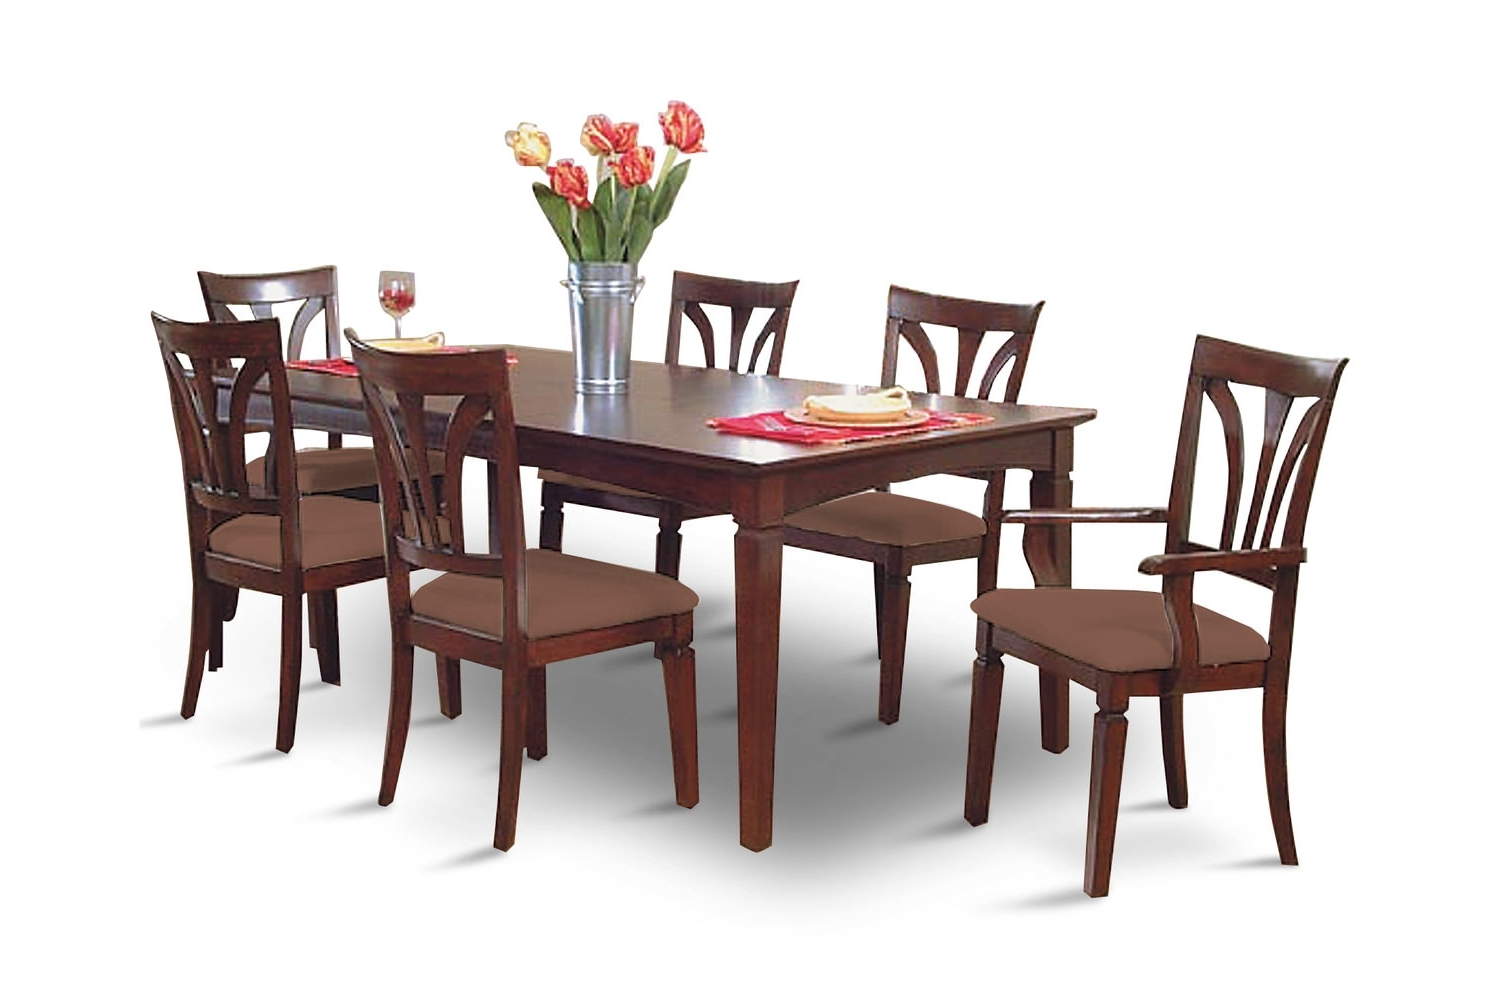 Chapleau Ii 9 Piece Extension Dining Table Sets Regarding Well Liked Dining Sets – Kitchen & Dining Room Sets – Hom Furniture (View 14 of 25)